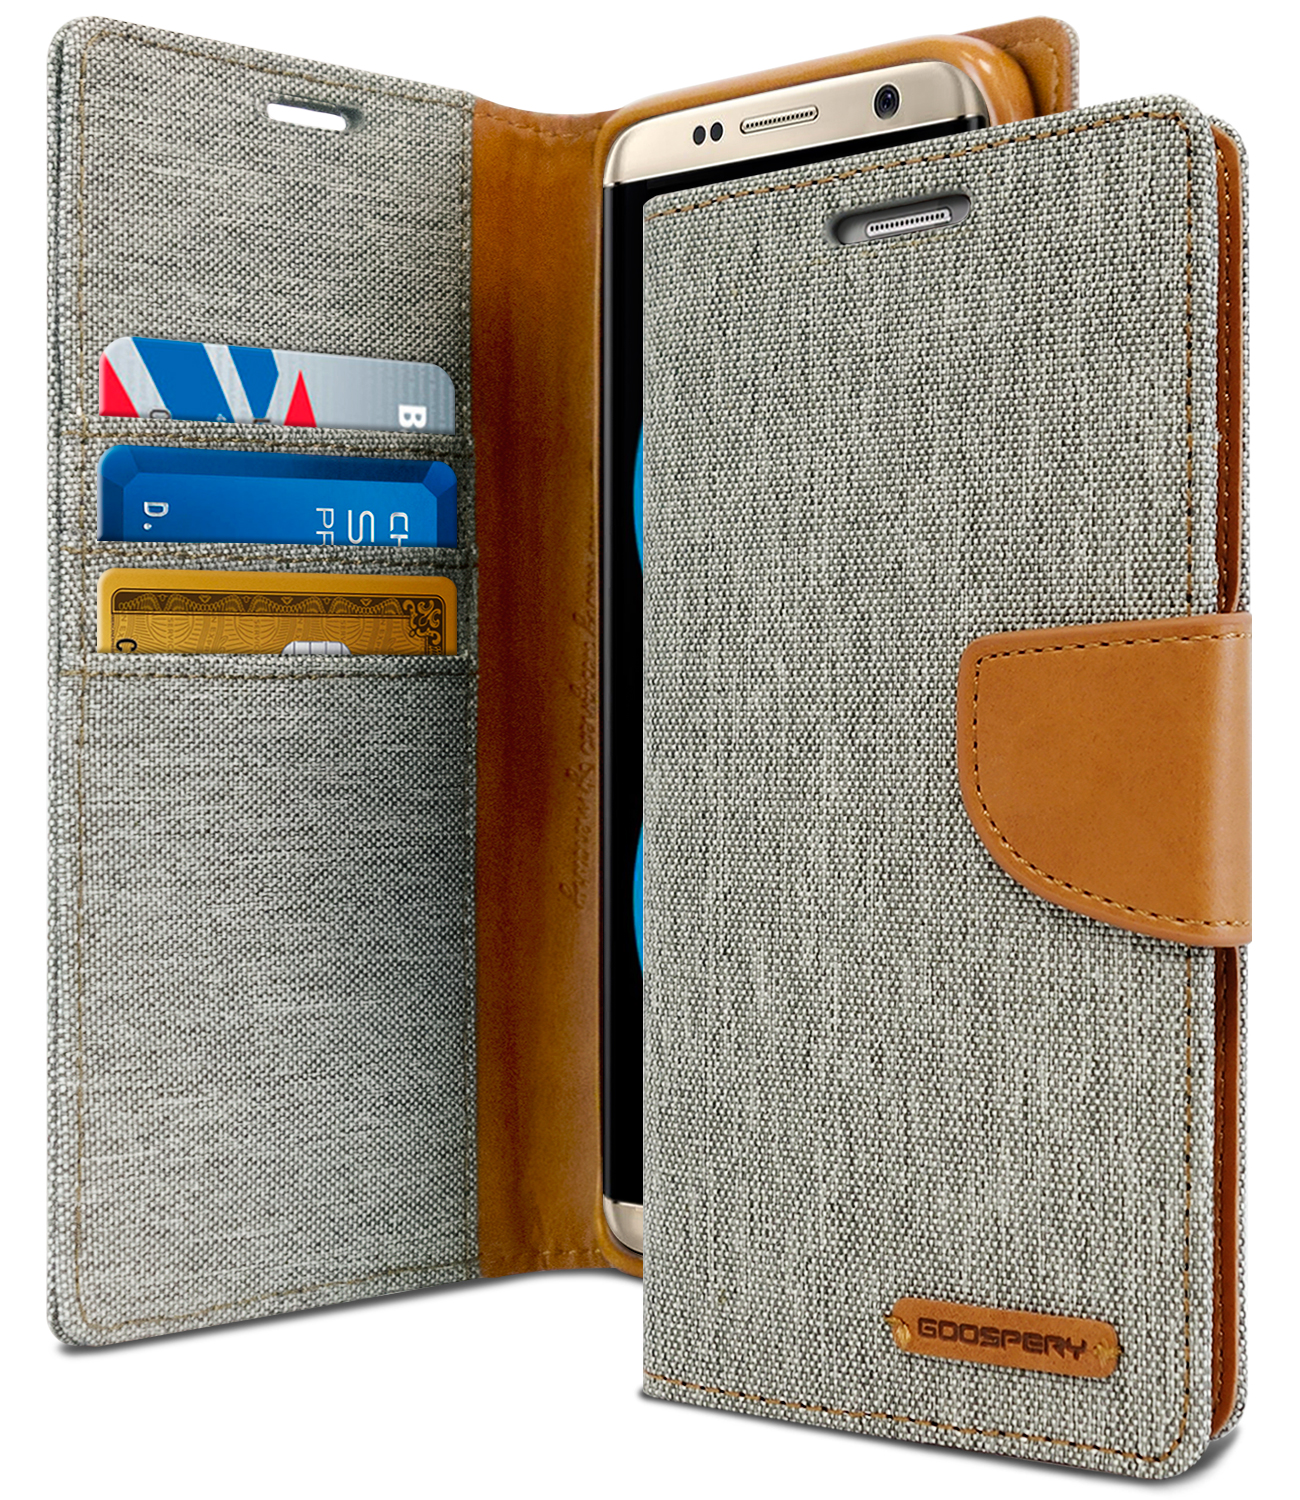 Galaxy S8 Case Drop Protection Goospery Canvas Diary Denim Samsung Core 2 Blue Material Wallet Id Card Cash Slot With Stand Flip Cover W Tpu Casing For